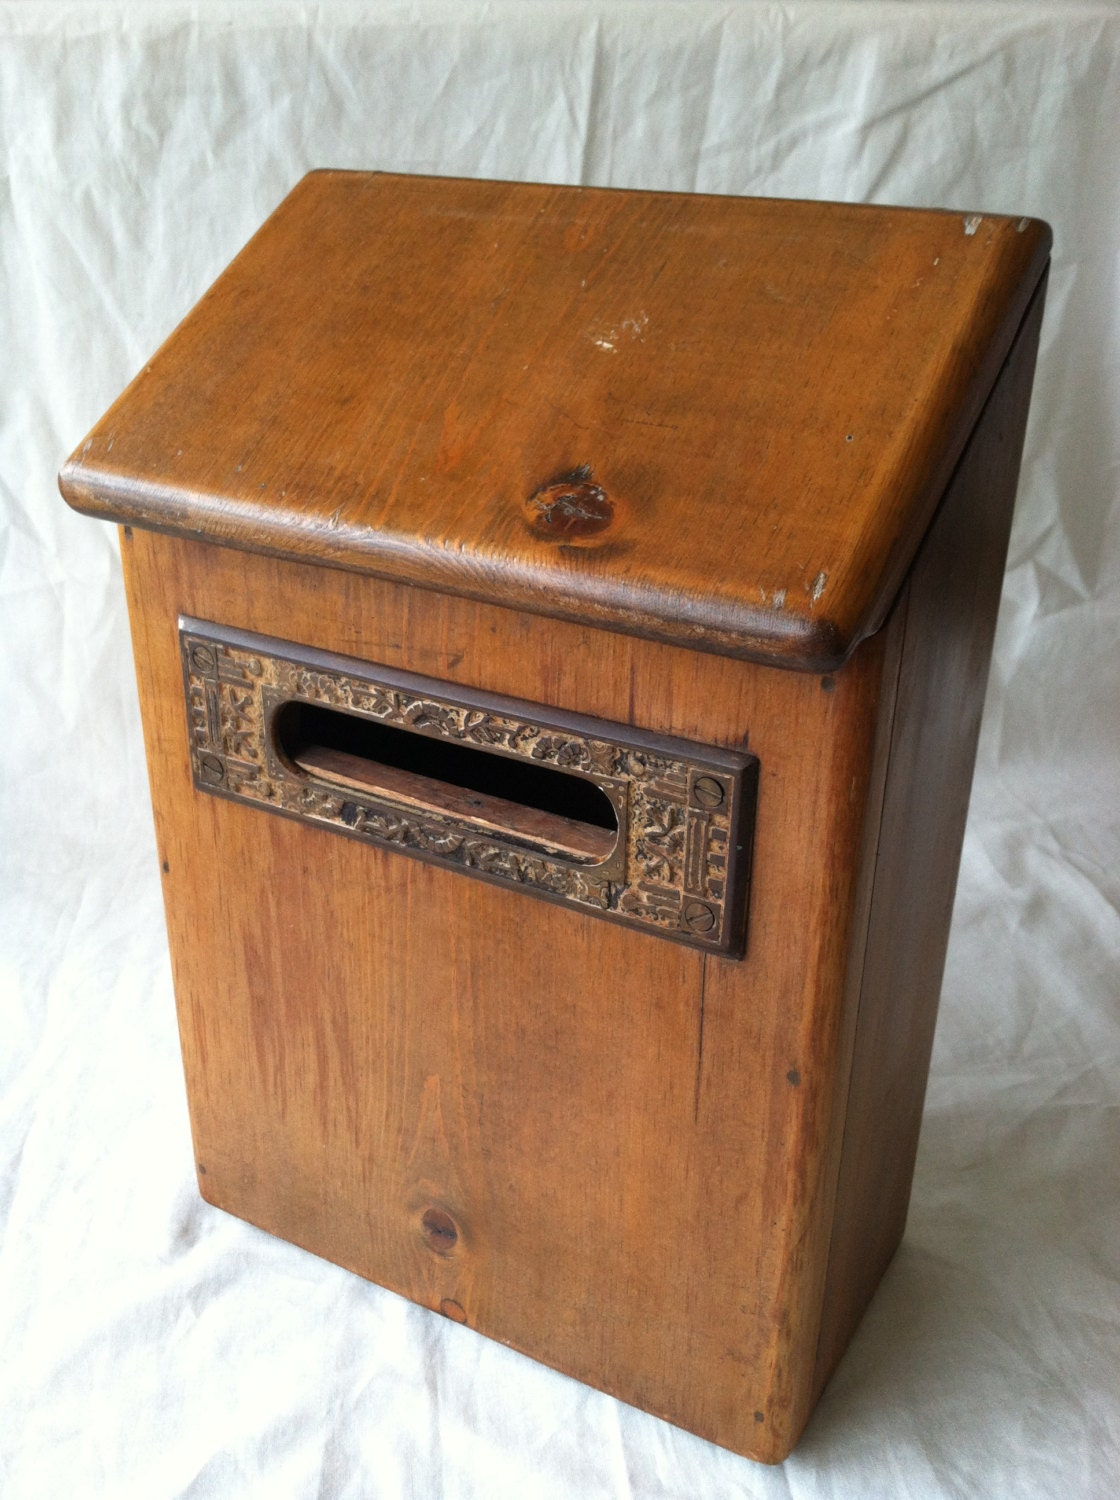 Antique Rustic Wooden Mail Box With Antique Metal Letter Slot. House Architects. Supreme White Granite. Beach Style. How To Get Rid Of Mosquitoes In The Yard. Patio Paver Ideas. Window Pane Mirror. Western Timber. Omega Cabinetry